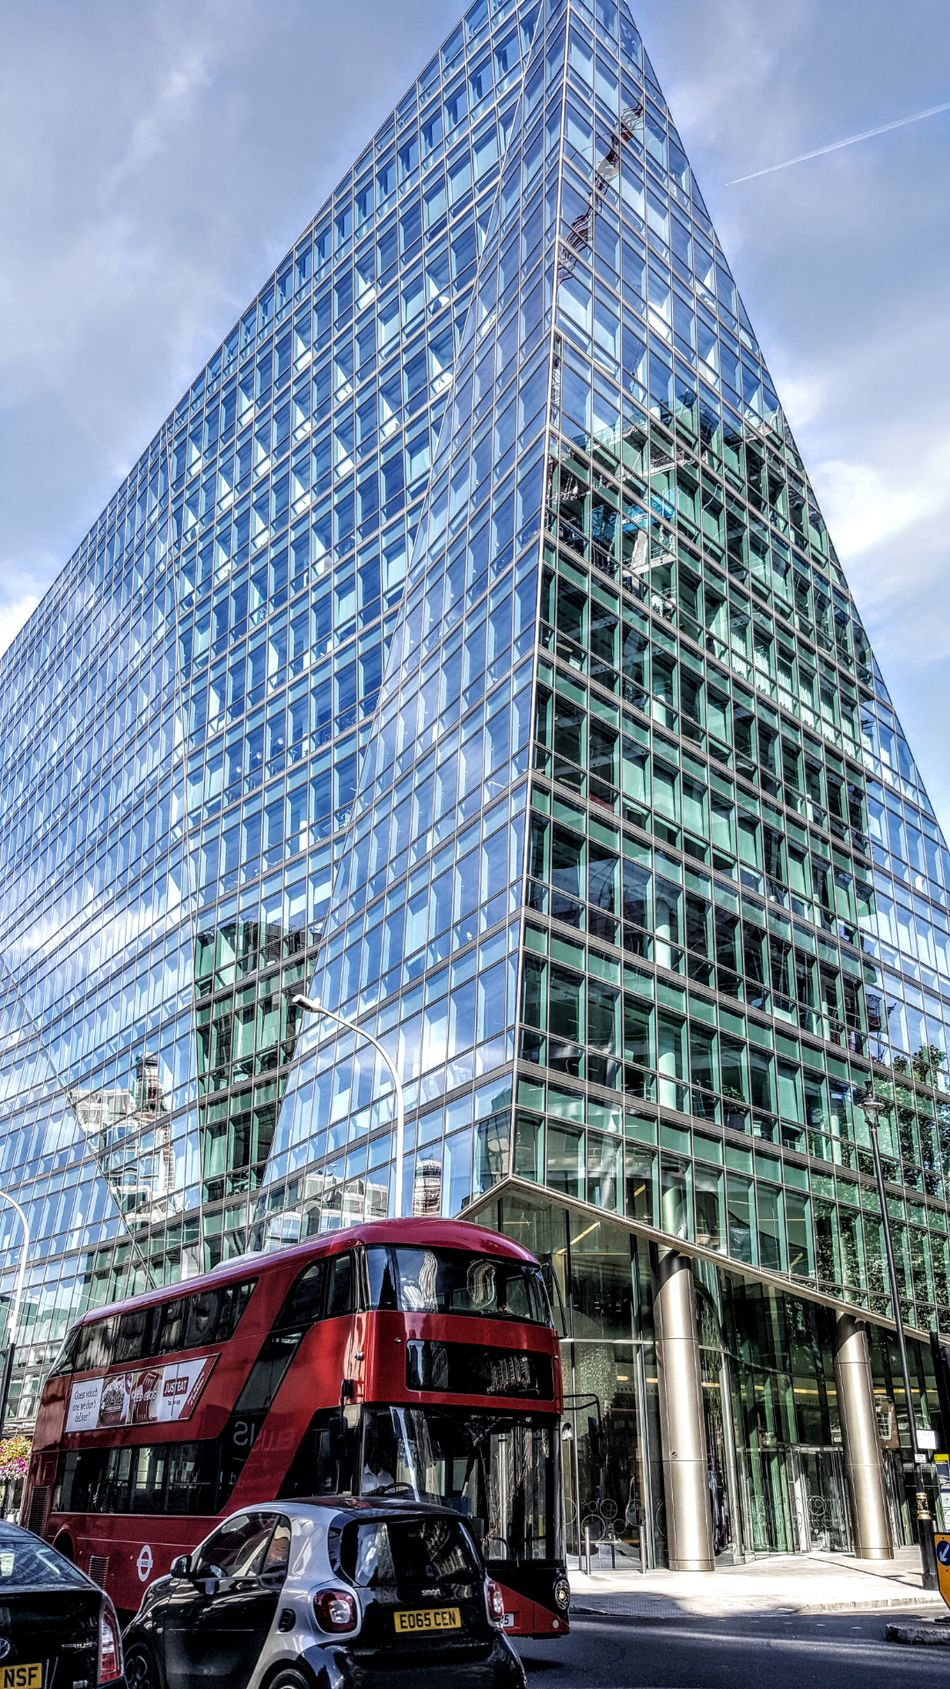 Architecture Cloud - Sky Modern Built Structure Sky Water Outdoors Day Building Exterior Skyscraper No People City Tranquil Scene London London Streets London Life Facebook Page London Photography LONDON❤ Friends ❤ London's Buildings Londononly Modern Cityscape Window Box